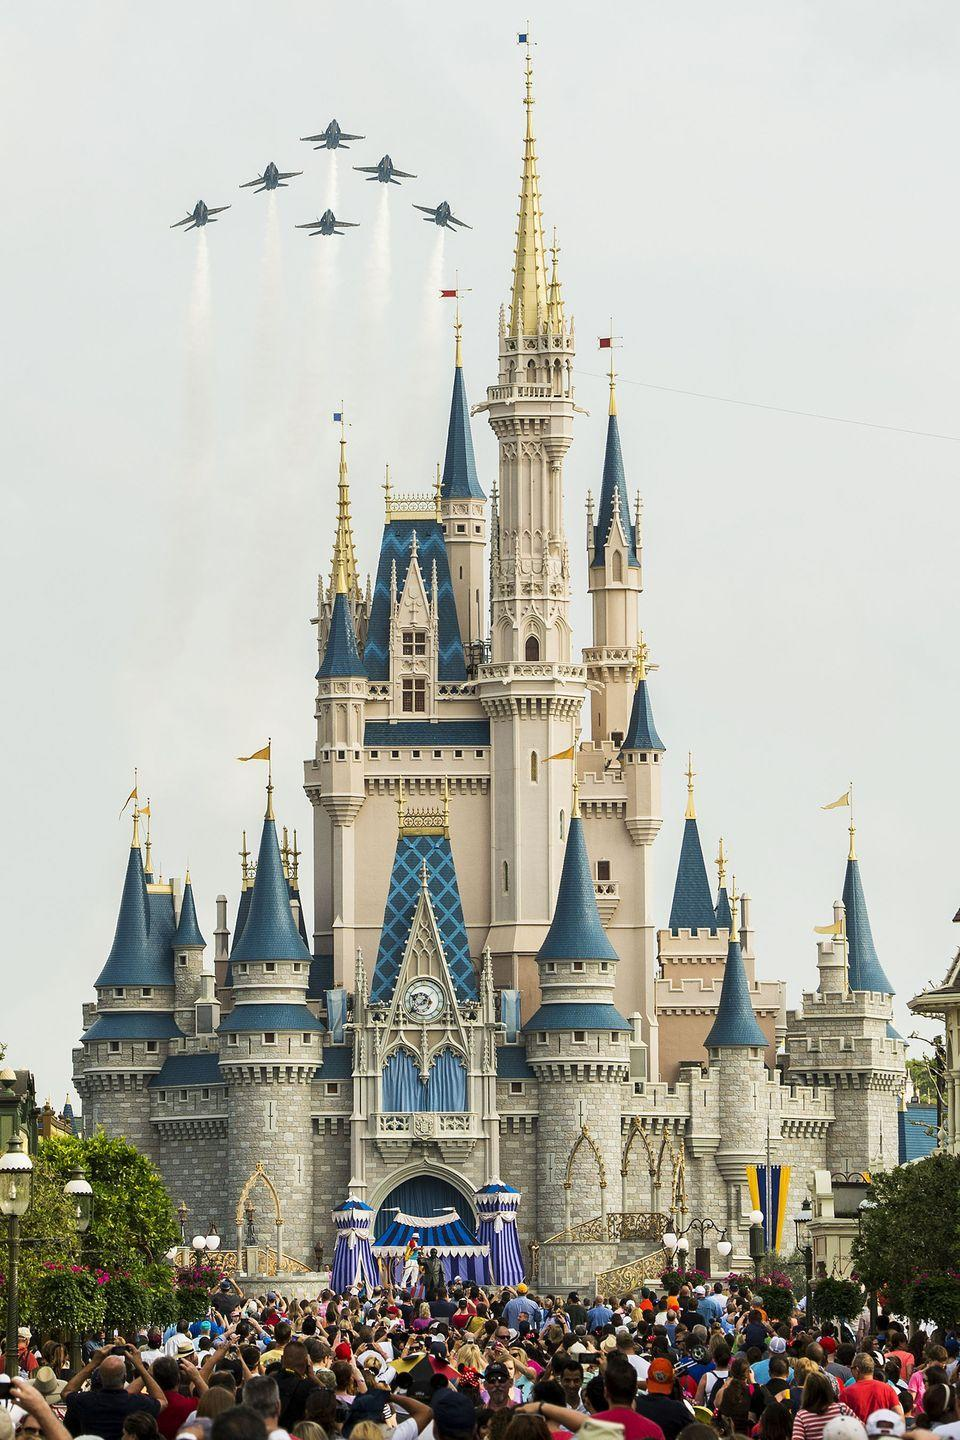 """<p>If you've ever been to Magic Kingdom, do you recall where the castle was located? Some, <a href=""""https://www.reddit.com/r/MandelaEffect/comments/3uyecb/disney_world_castle_at_front_of_the_park/"""" rel=""""nofollow noopener"""" target=""""_blank"""" data-ylk=""""slk:even one Orlando local on Reddit"""" class=""""link rapid-noclick-resp"""">even one Orlando local on Reddit</a>, clearly remembers it being the entrance to the park. </p>"""